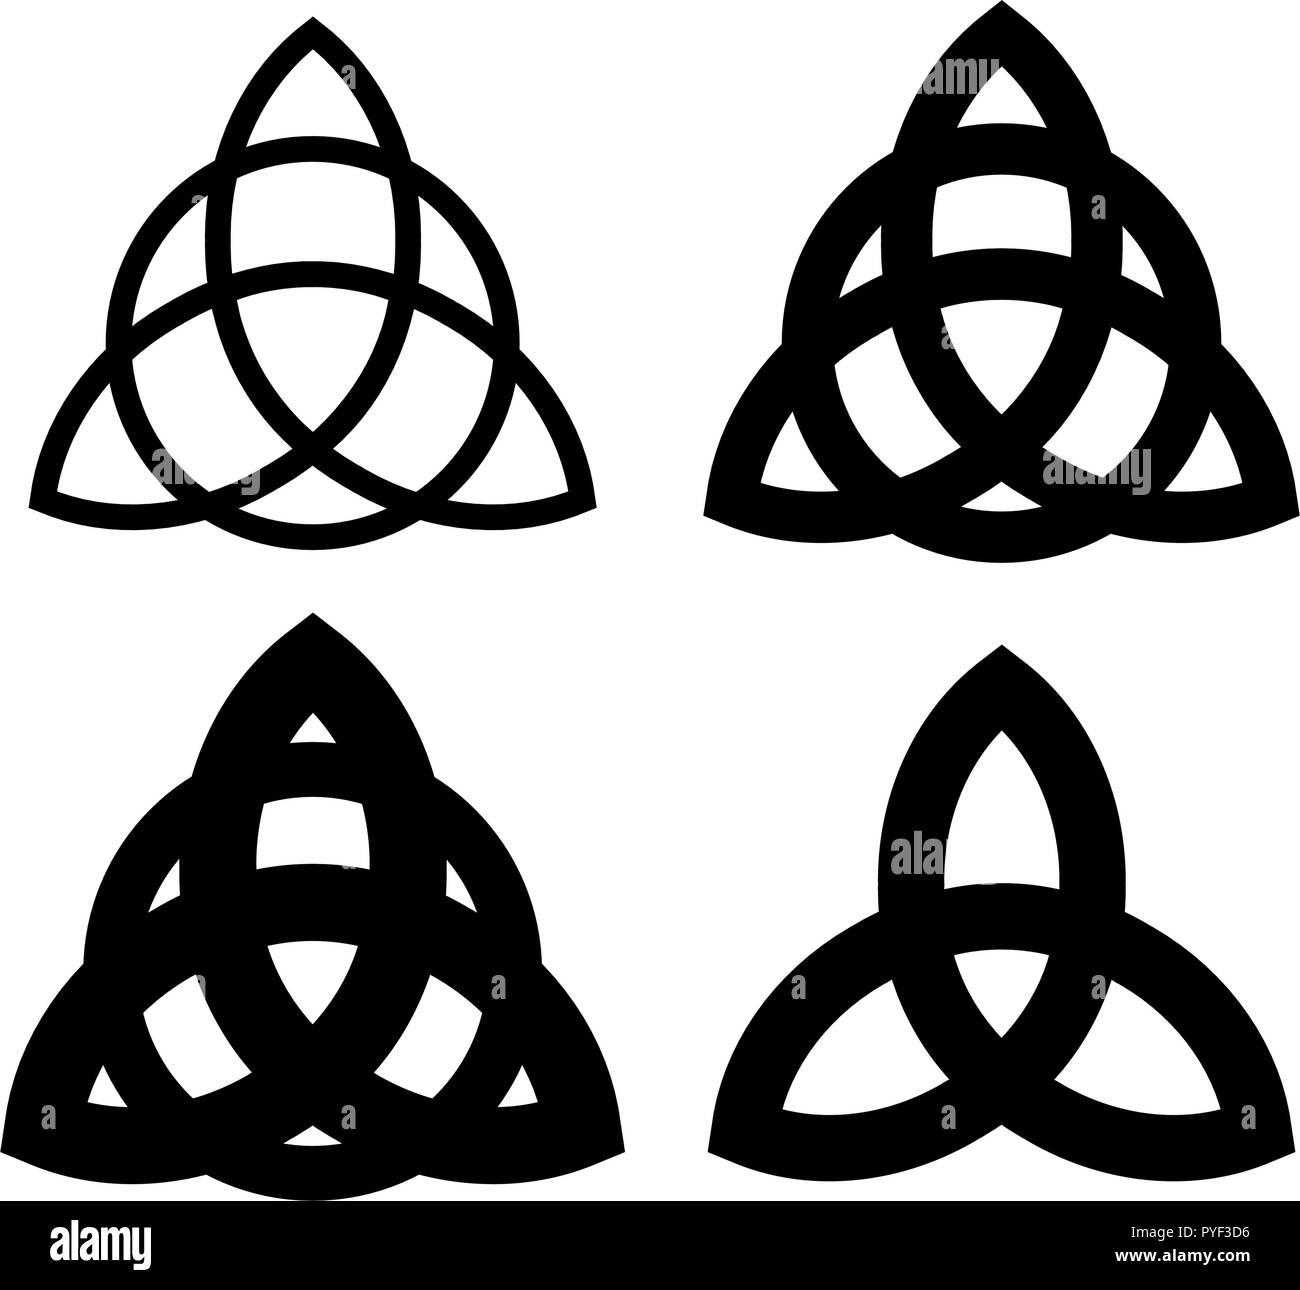 Triquetra - Wiccan symbol from Charmed. Celtic Pagan trinity knots different forms. Vector icons of ancient emblems. - Stock Vector